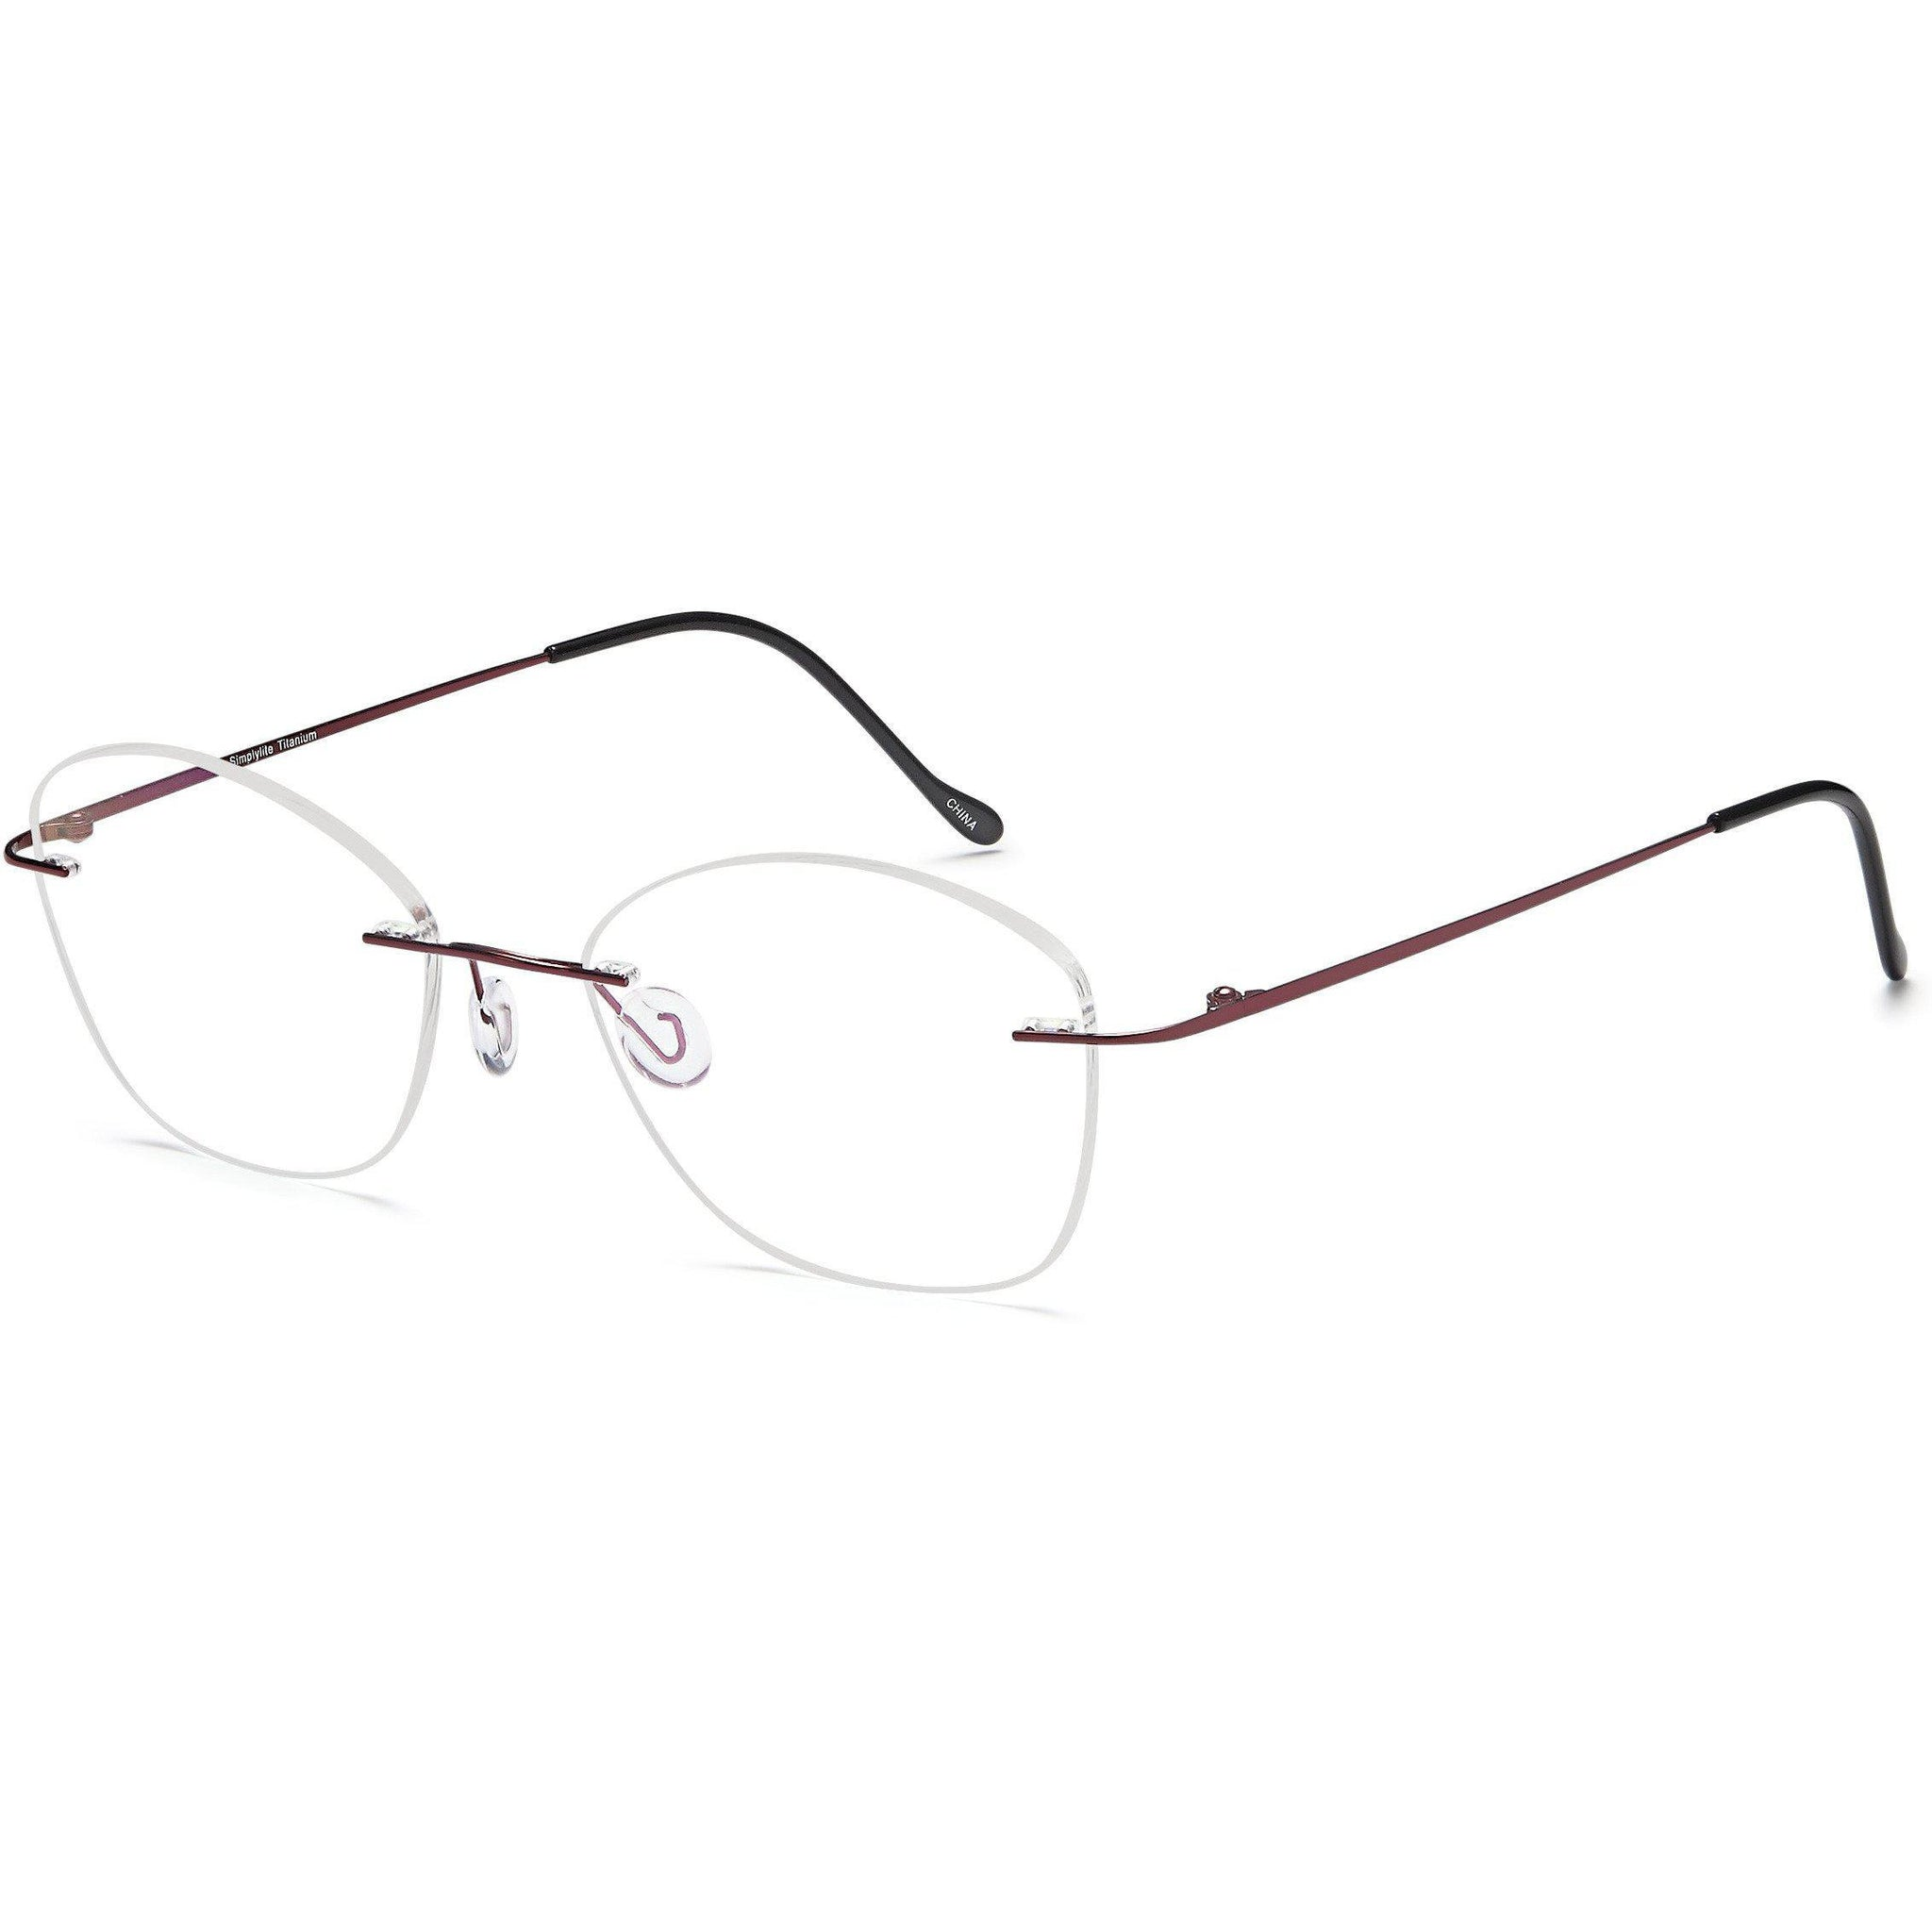 Feather Prescription Glasses SL 704 Eyeglasses Frames